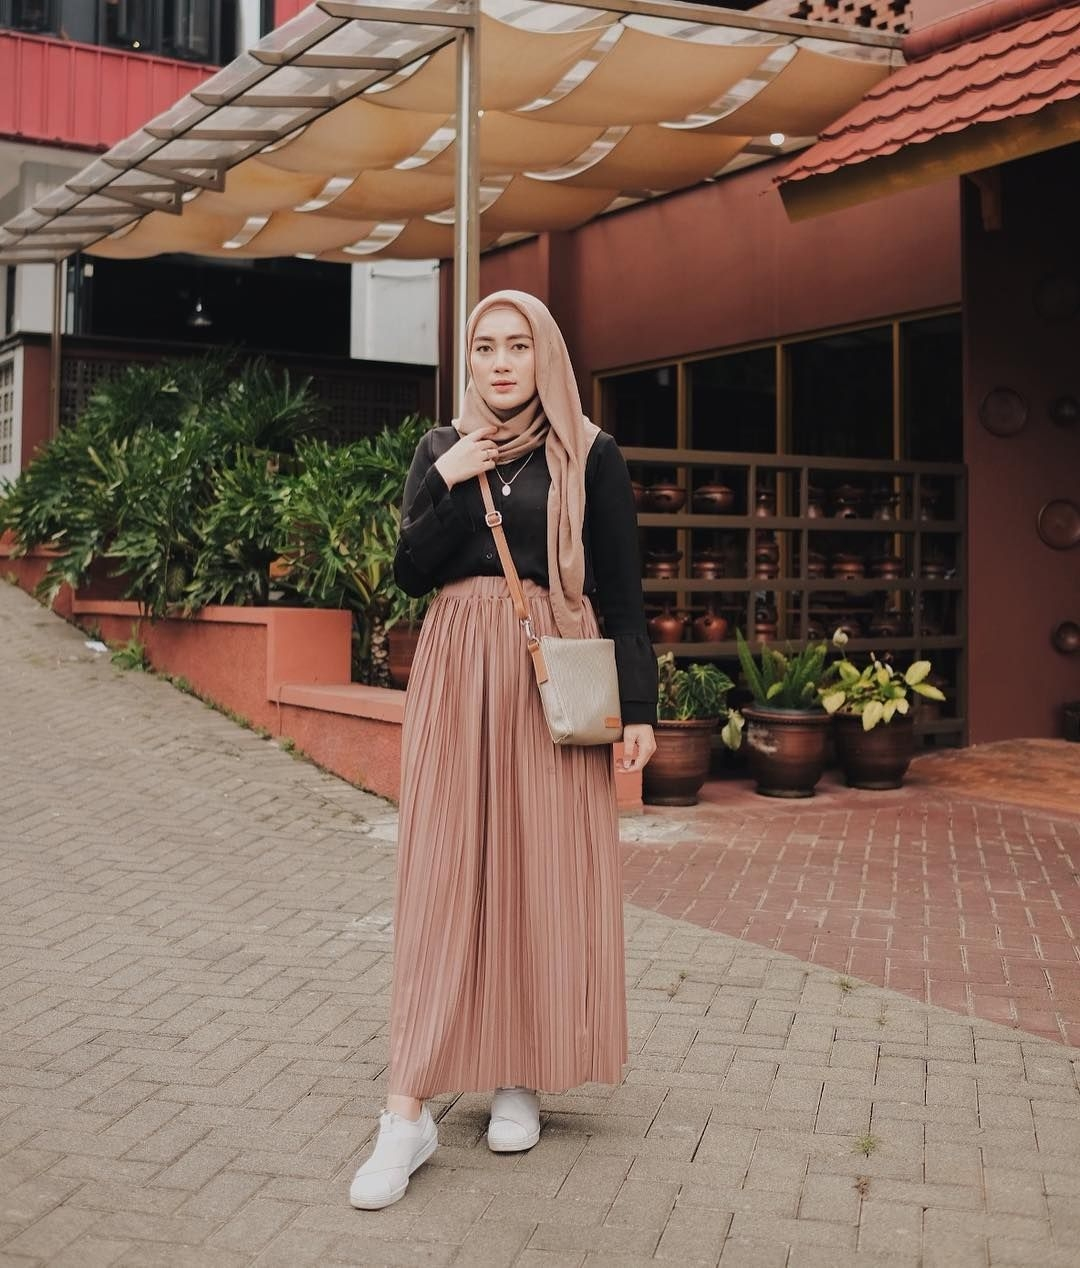 ashry rizqky rabani on instagram going casual with